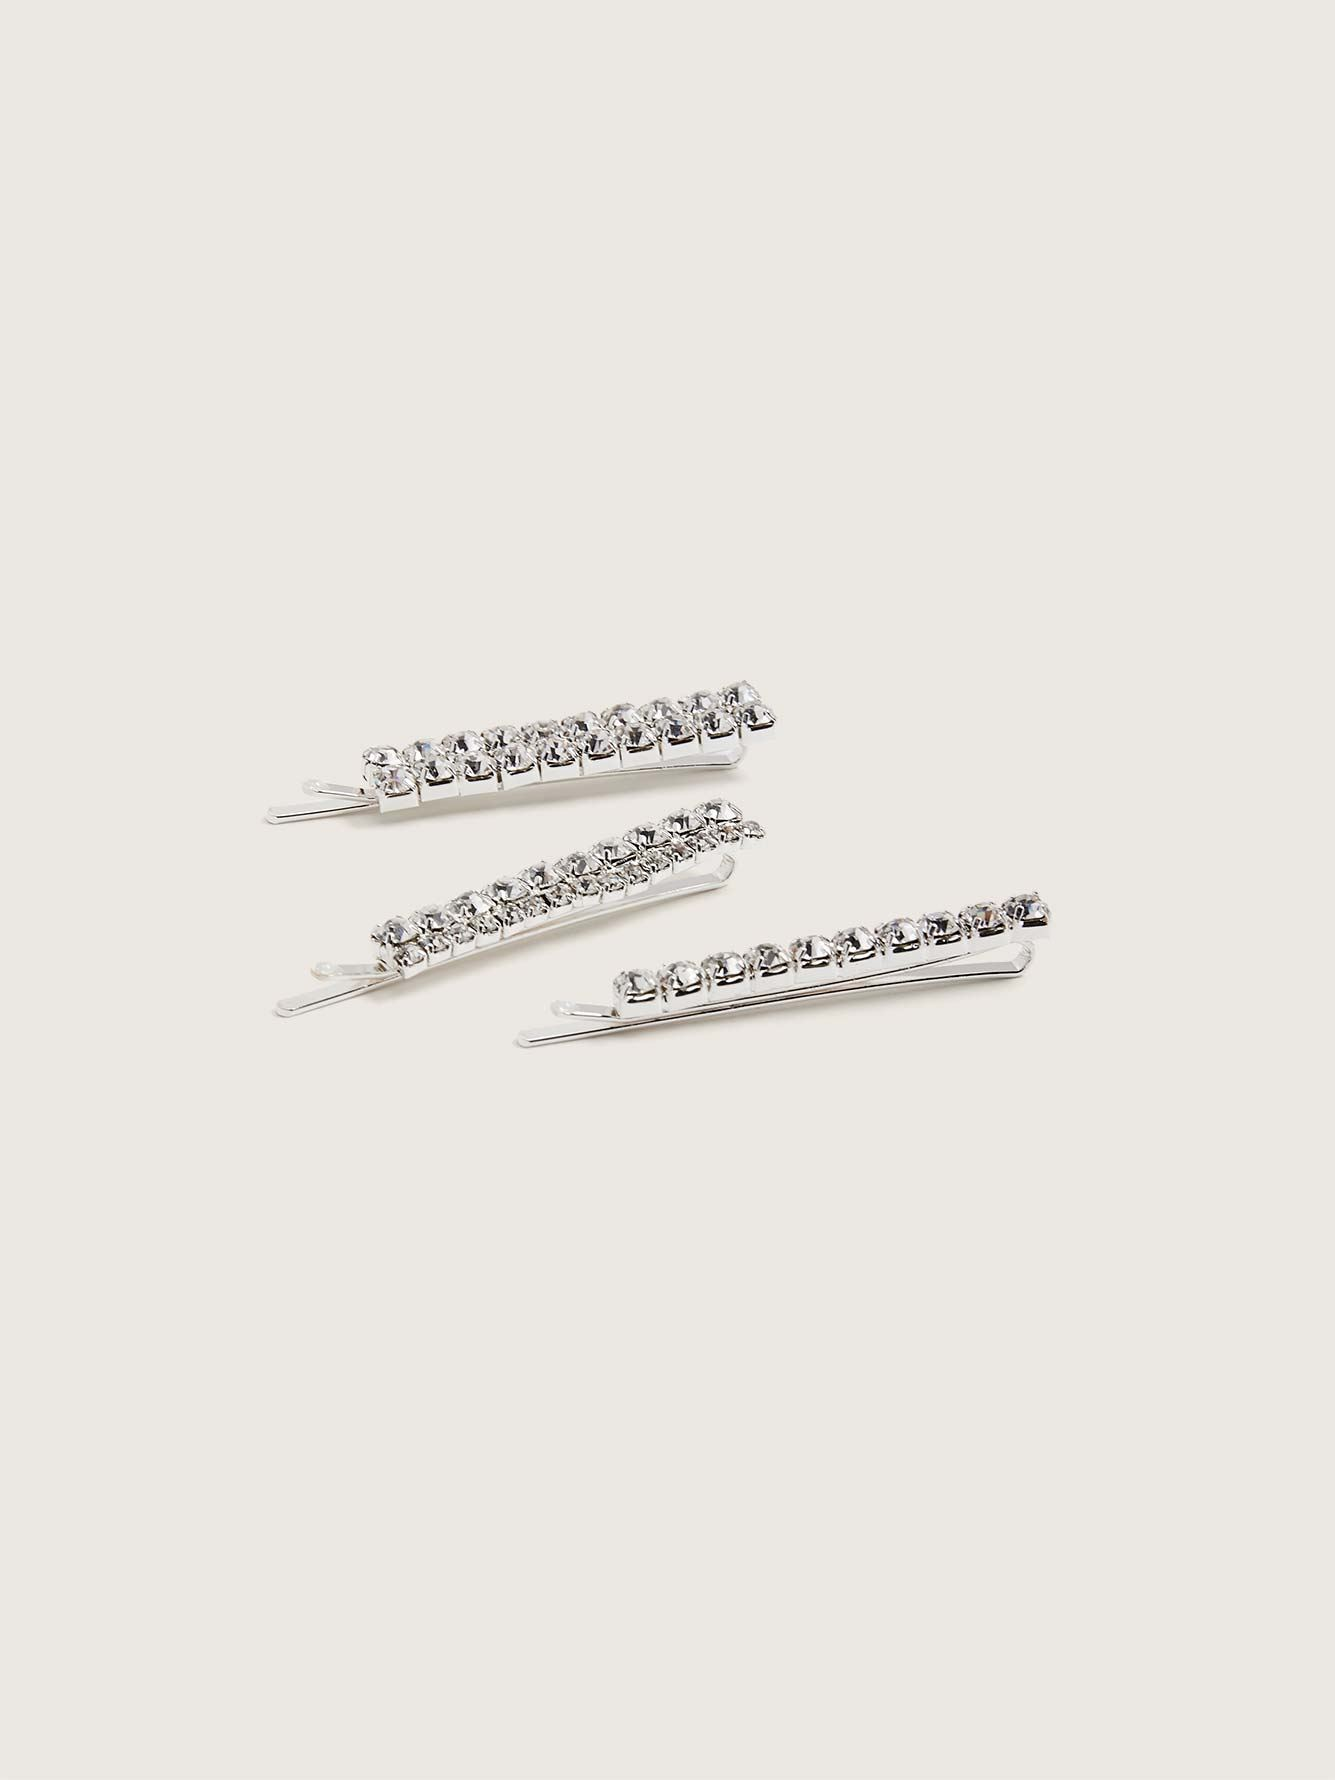 Clear Rhinestone Hair Pins, Pack of 3 - Addition Elle